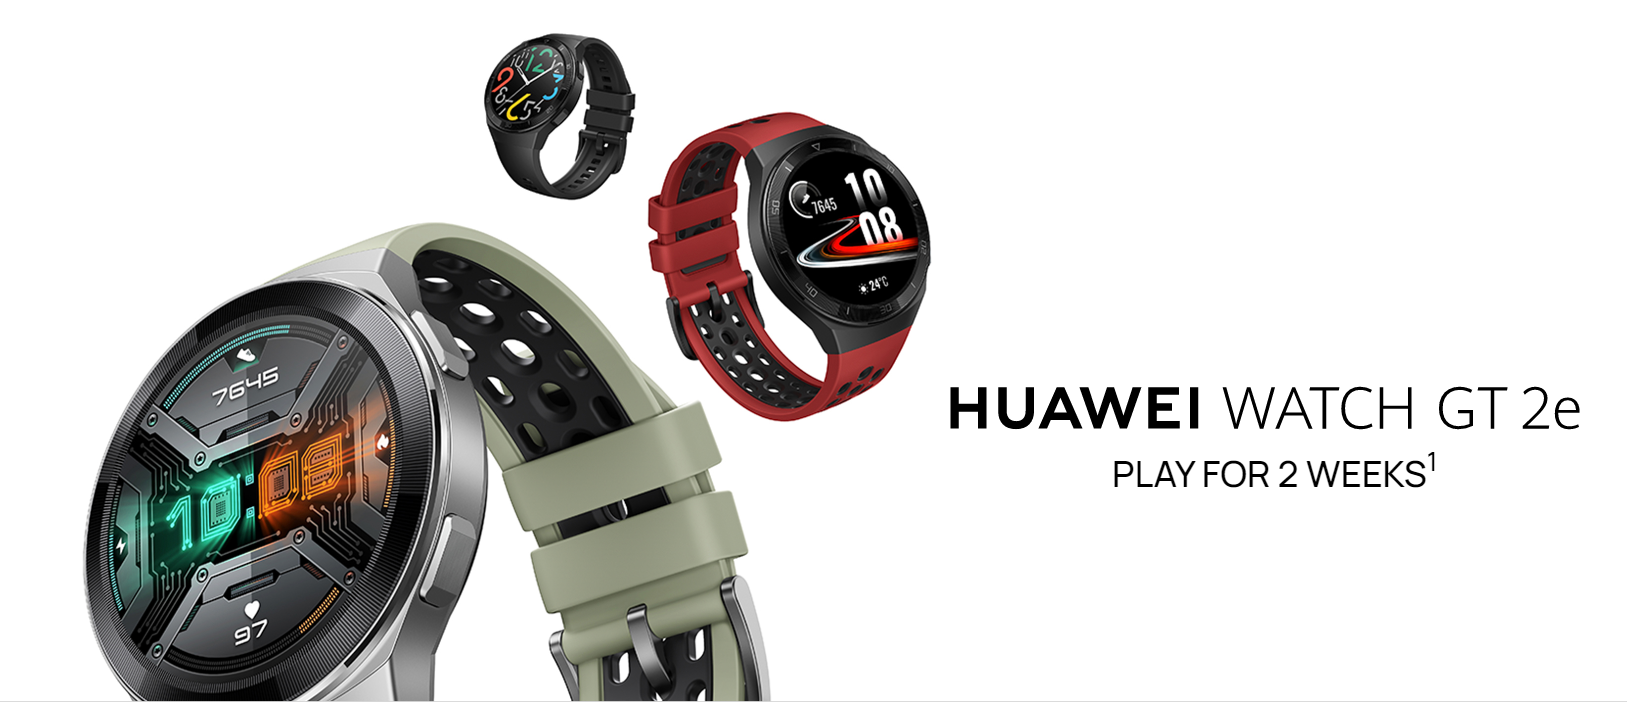 Huawei Watch GT 2e Launched in Nepal | Improved Version of Watch GT 2